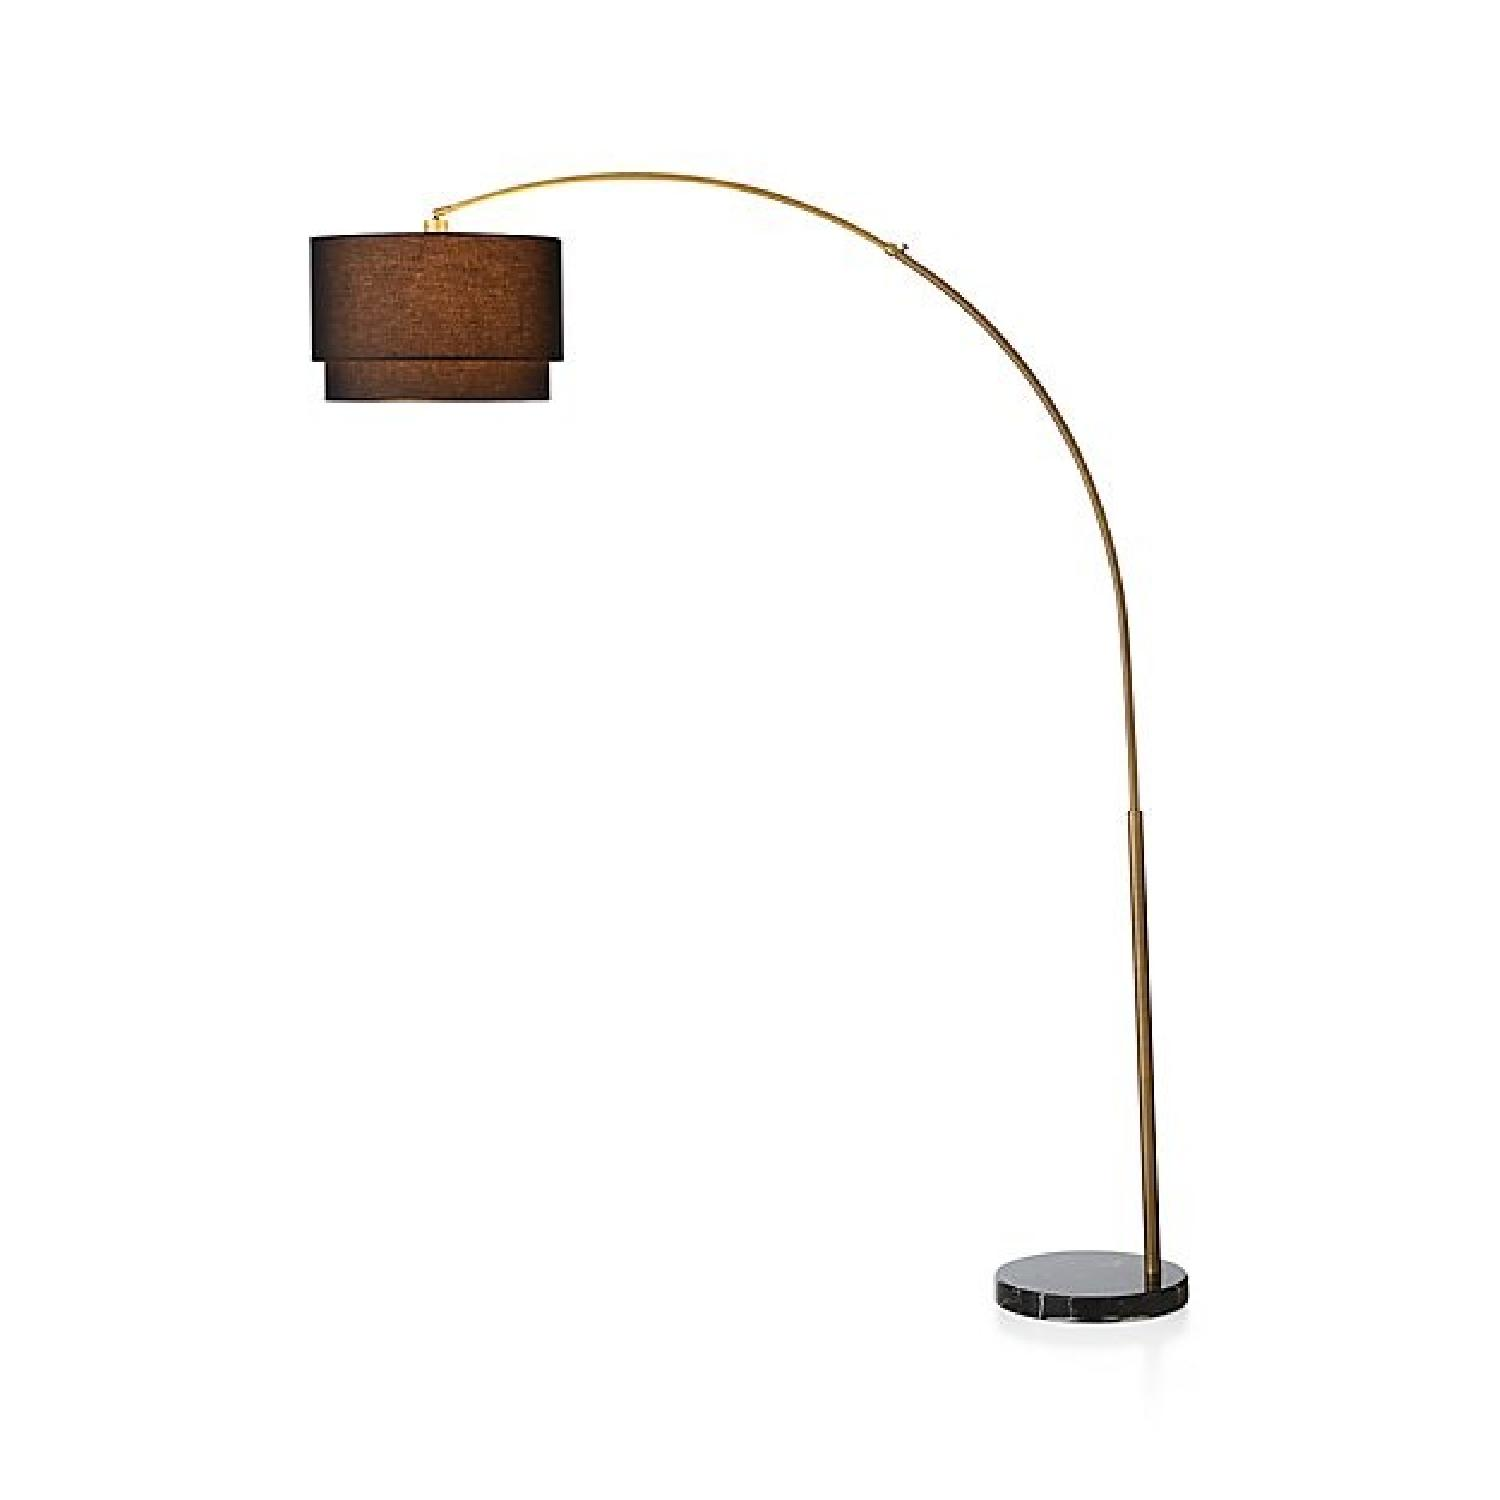 Crate & Barrel Meryl Arc Floor Lamp